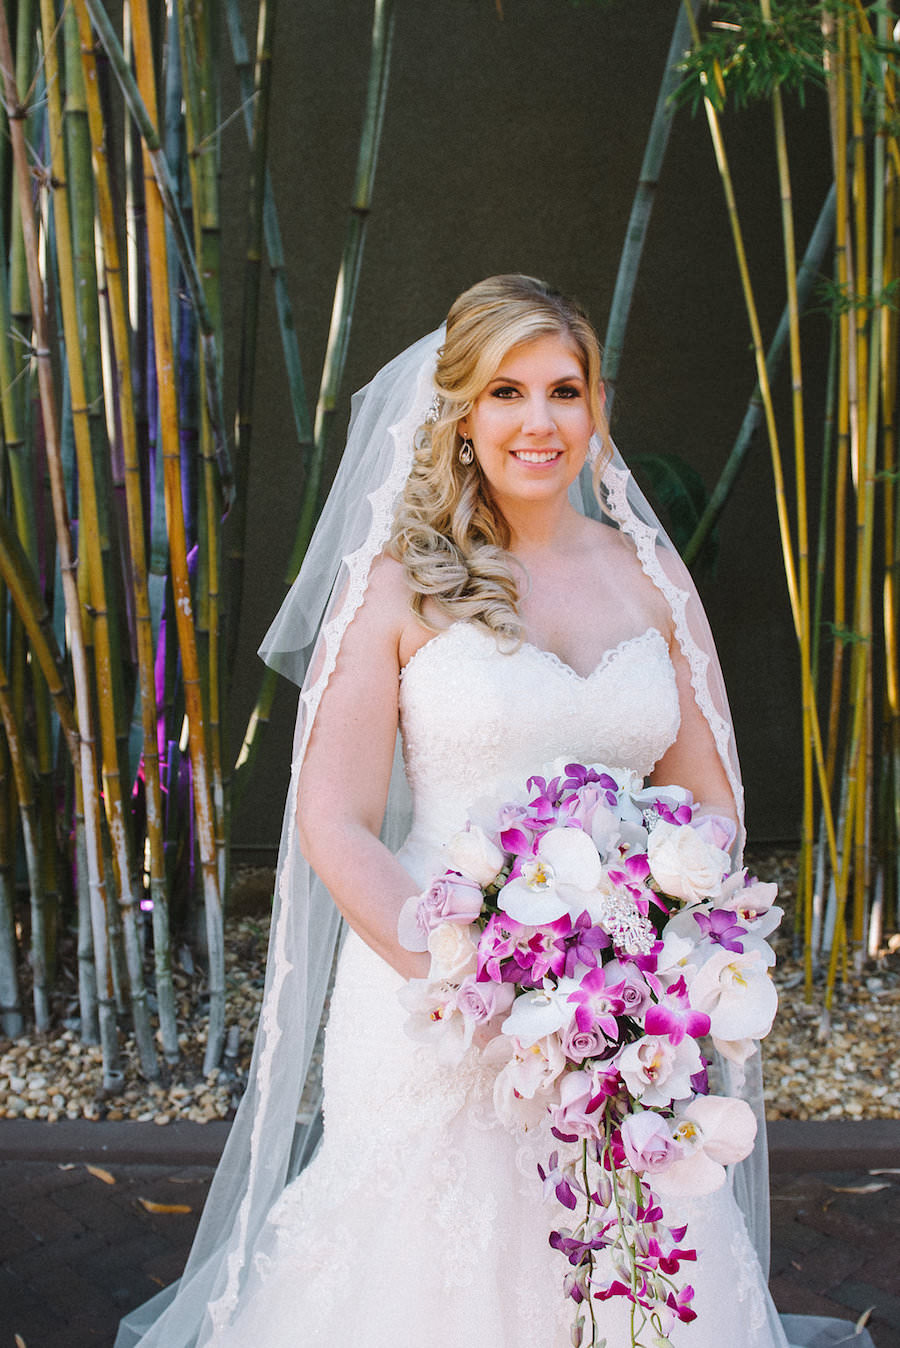 Bridal Wedding Portrait in Ivory Narin Moda Lace Wedding Dress with White and Fuchsia Cascading Wedding Bouquet | St. Petersburg Wedding Florist Iza's Flowers | Hair and Makeup by Michele Renee The Studio